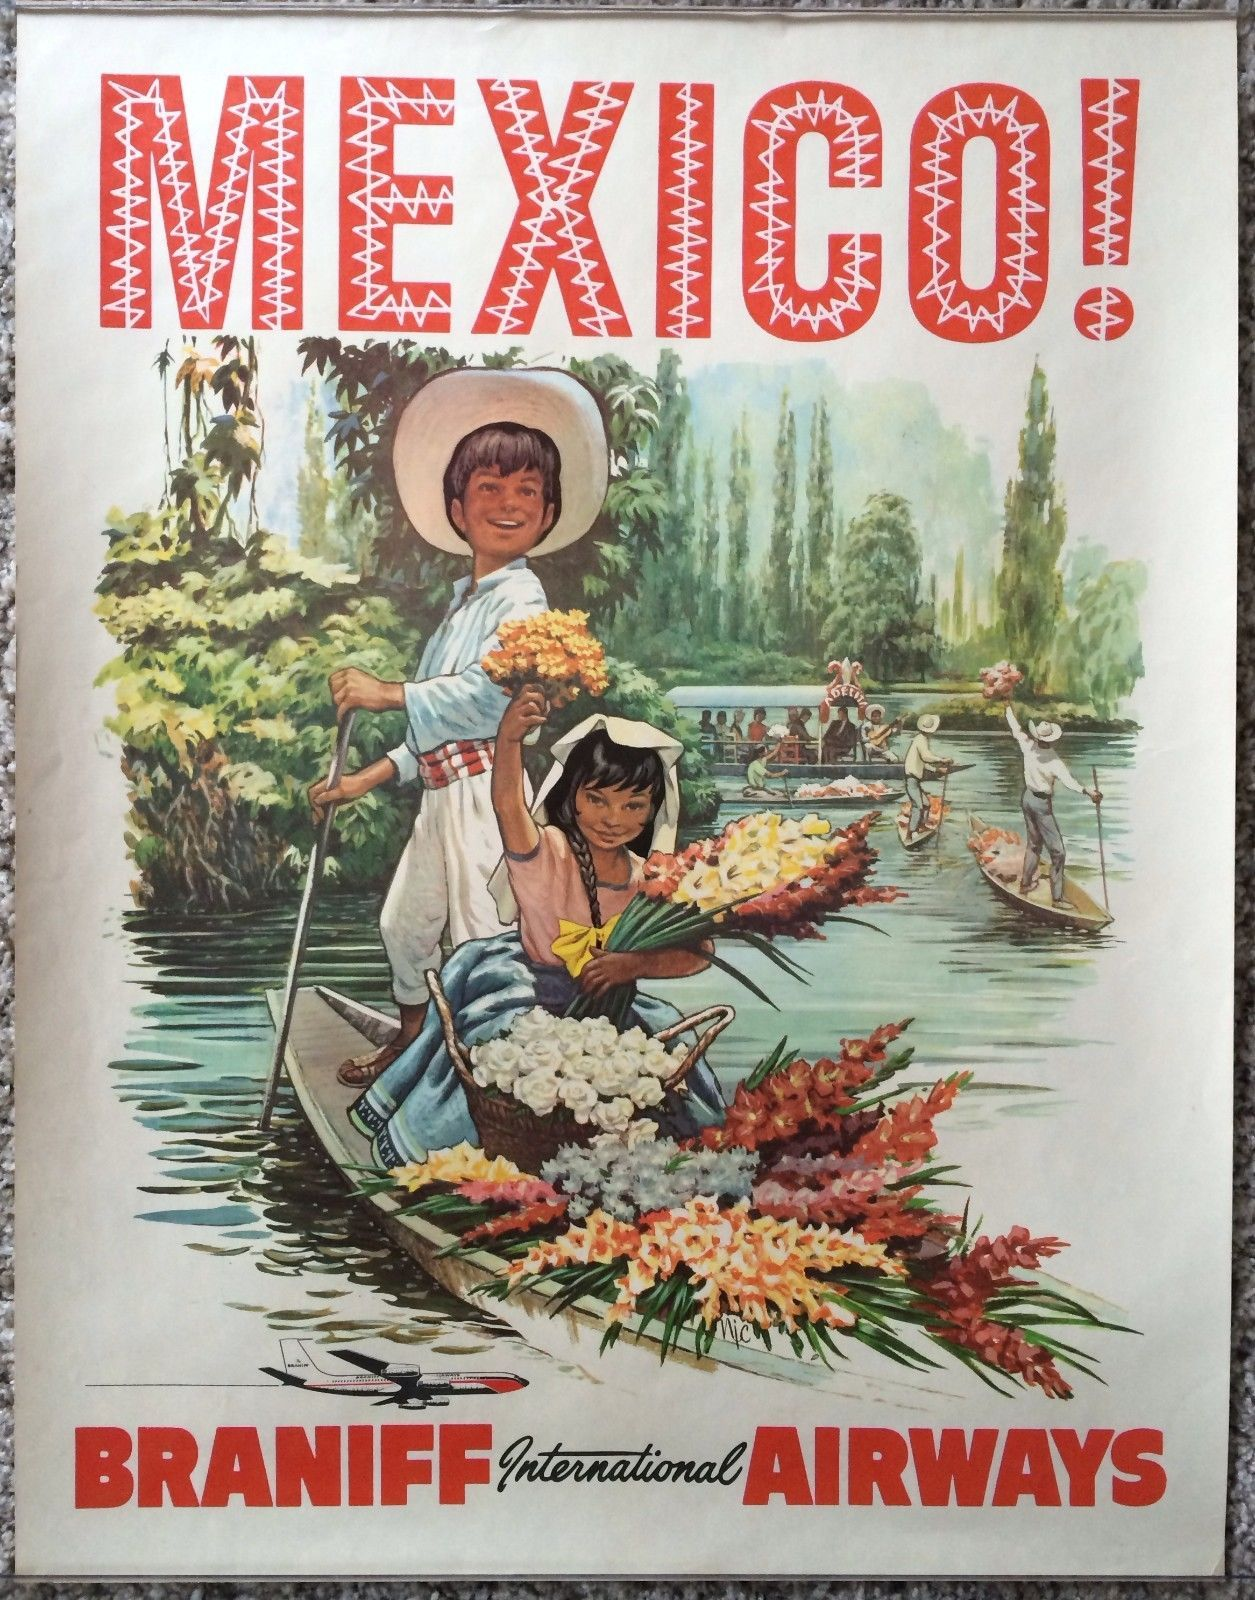 Mexico Fly Air Mexican Latin America Vintage Travel Advertisement Art Poster